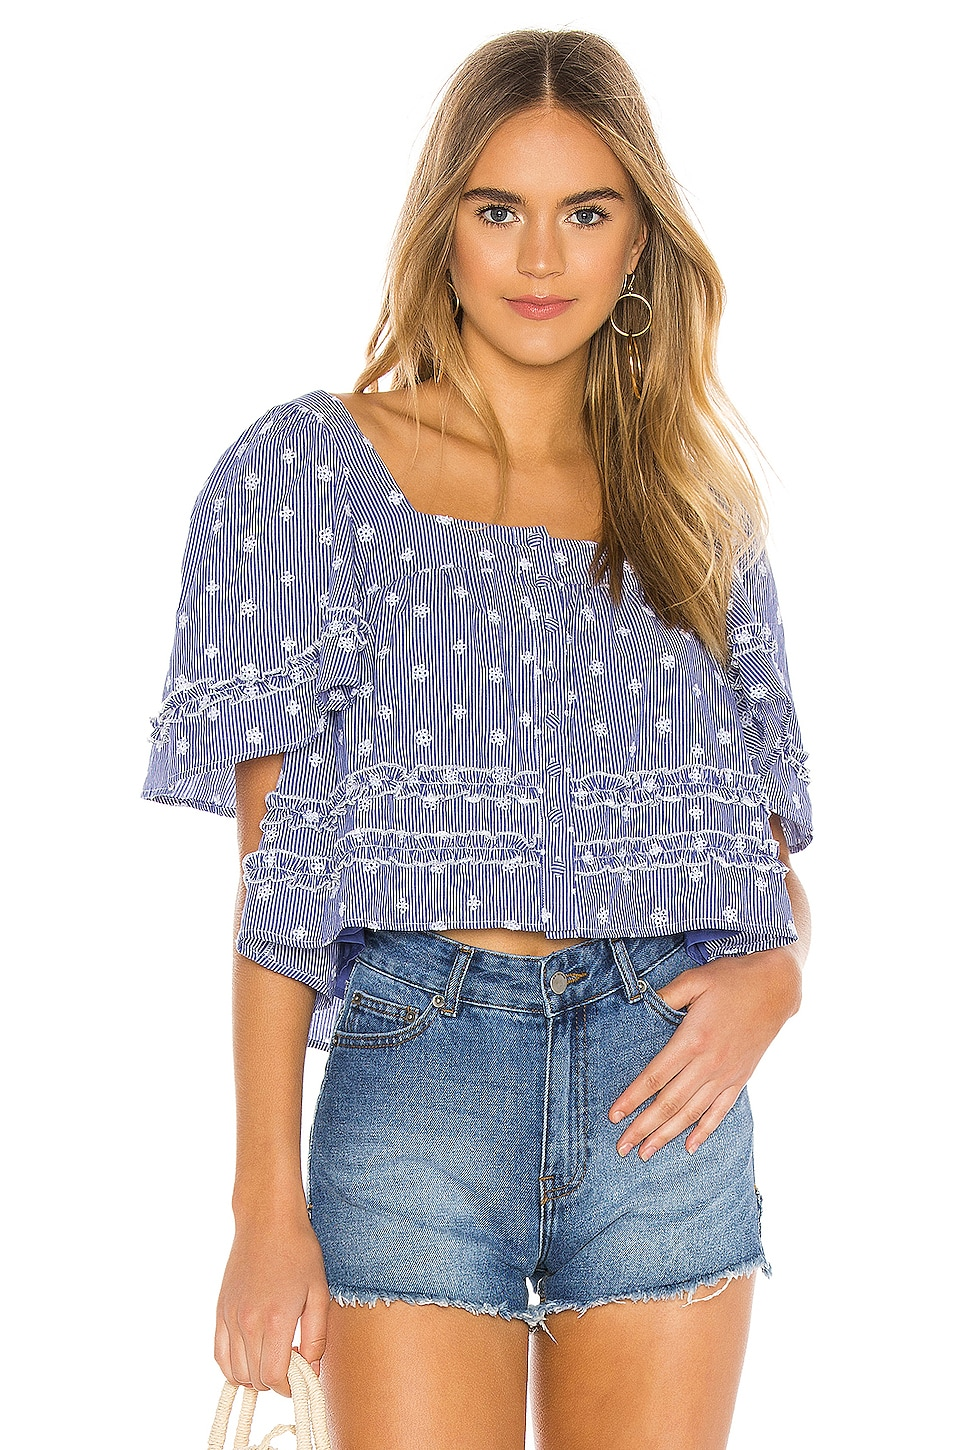 Tularosa Laney Top in Navy & White